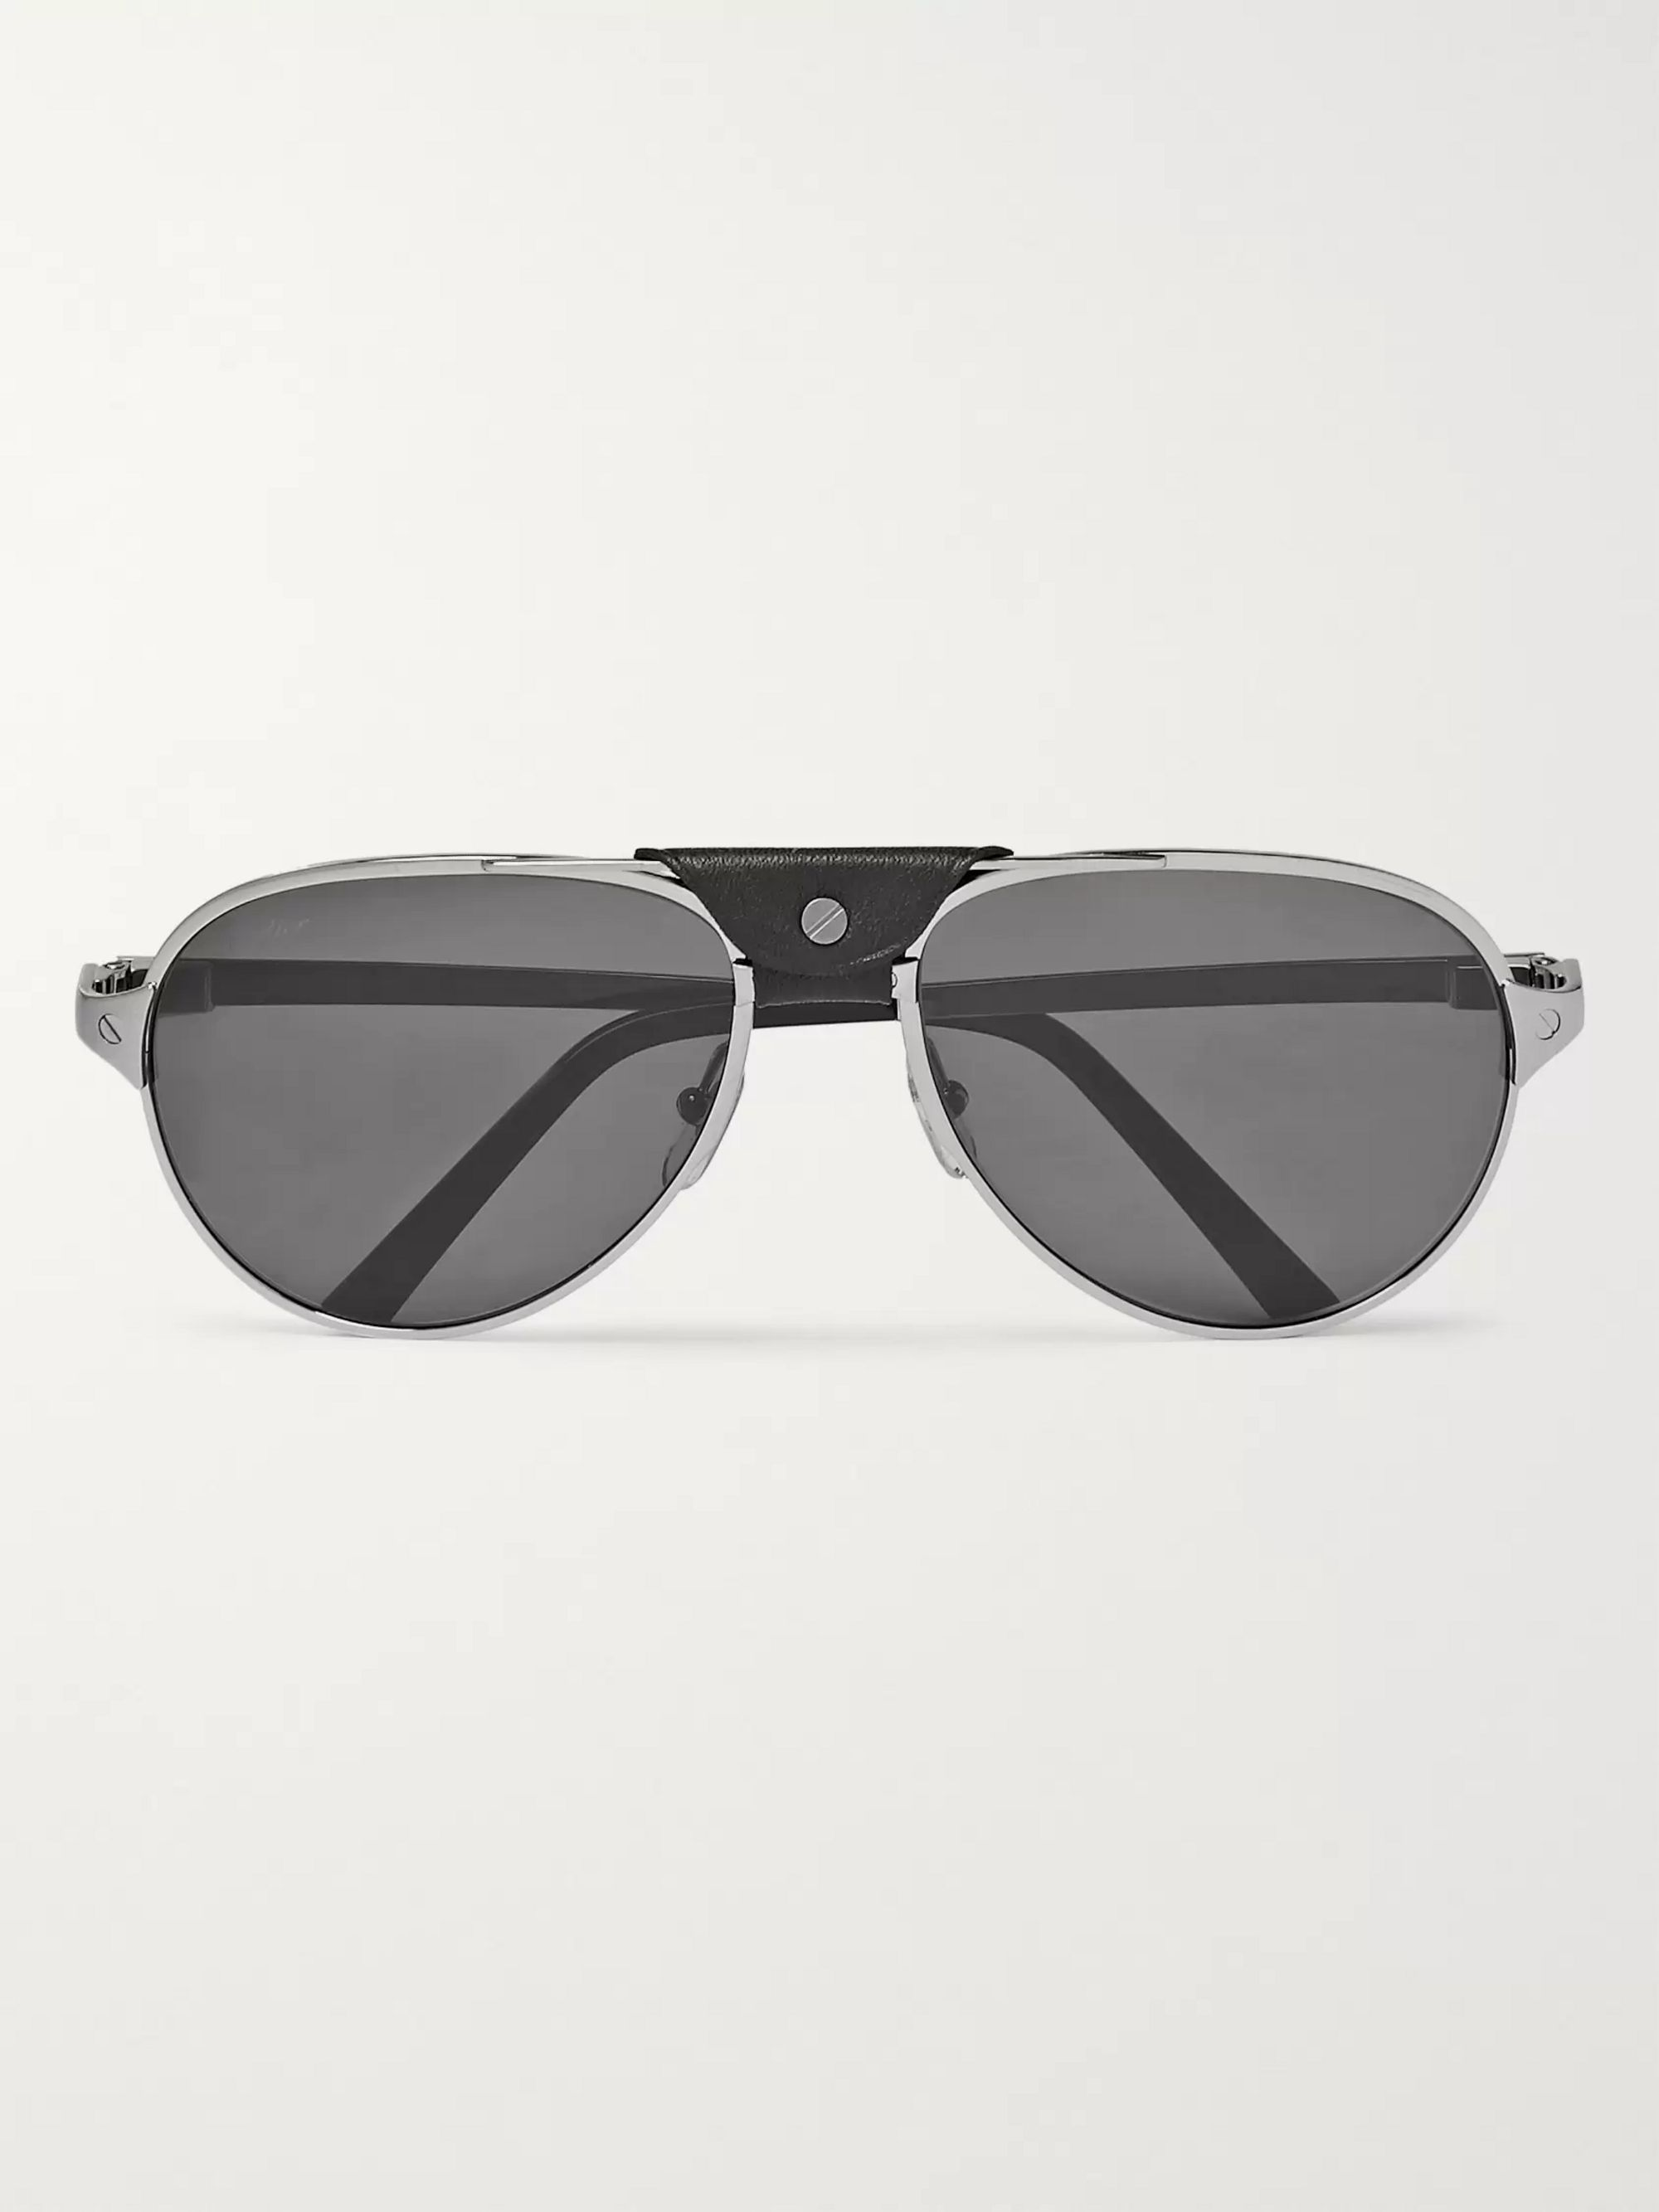 Cartier Eyewear Santos de Cartier Aviator-Style Leather-Trimmed Silver-Tone Sunglasses